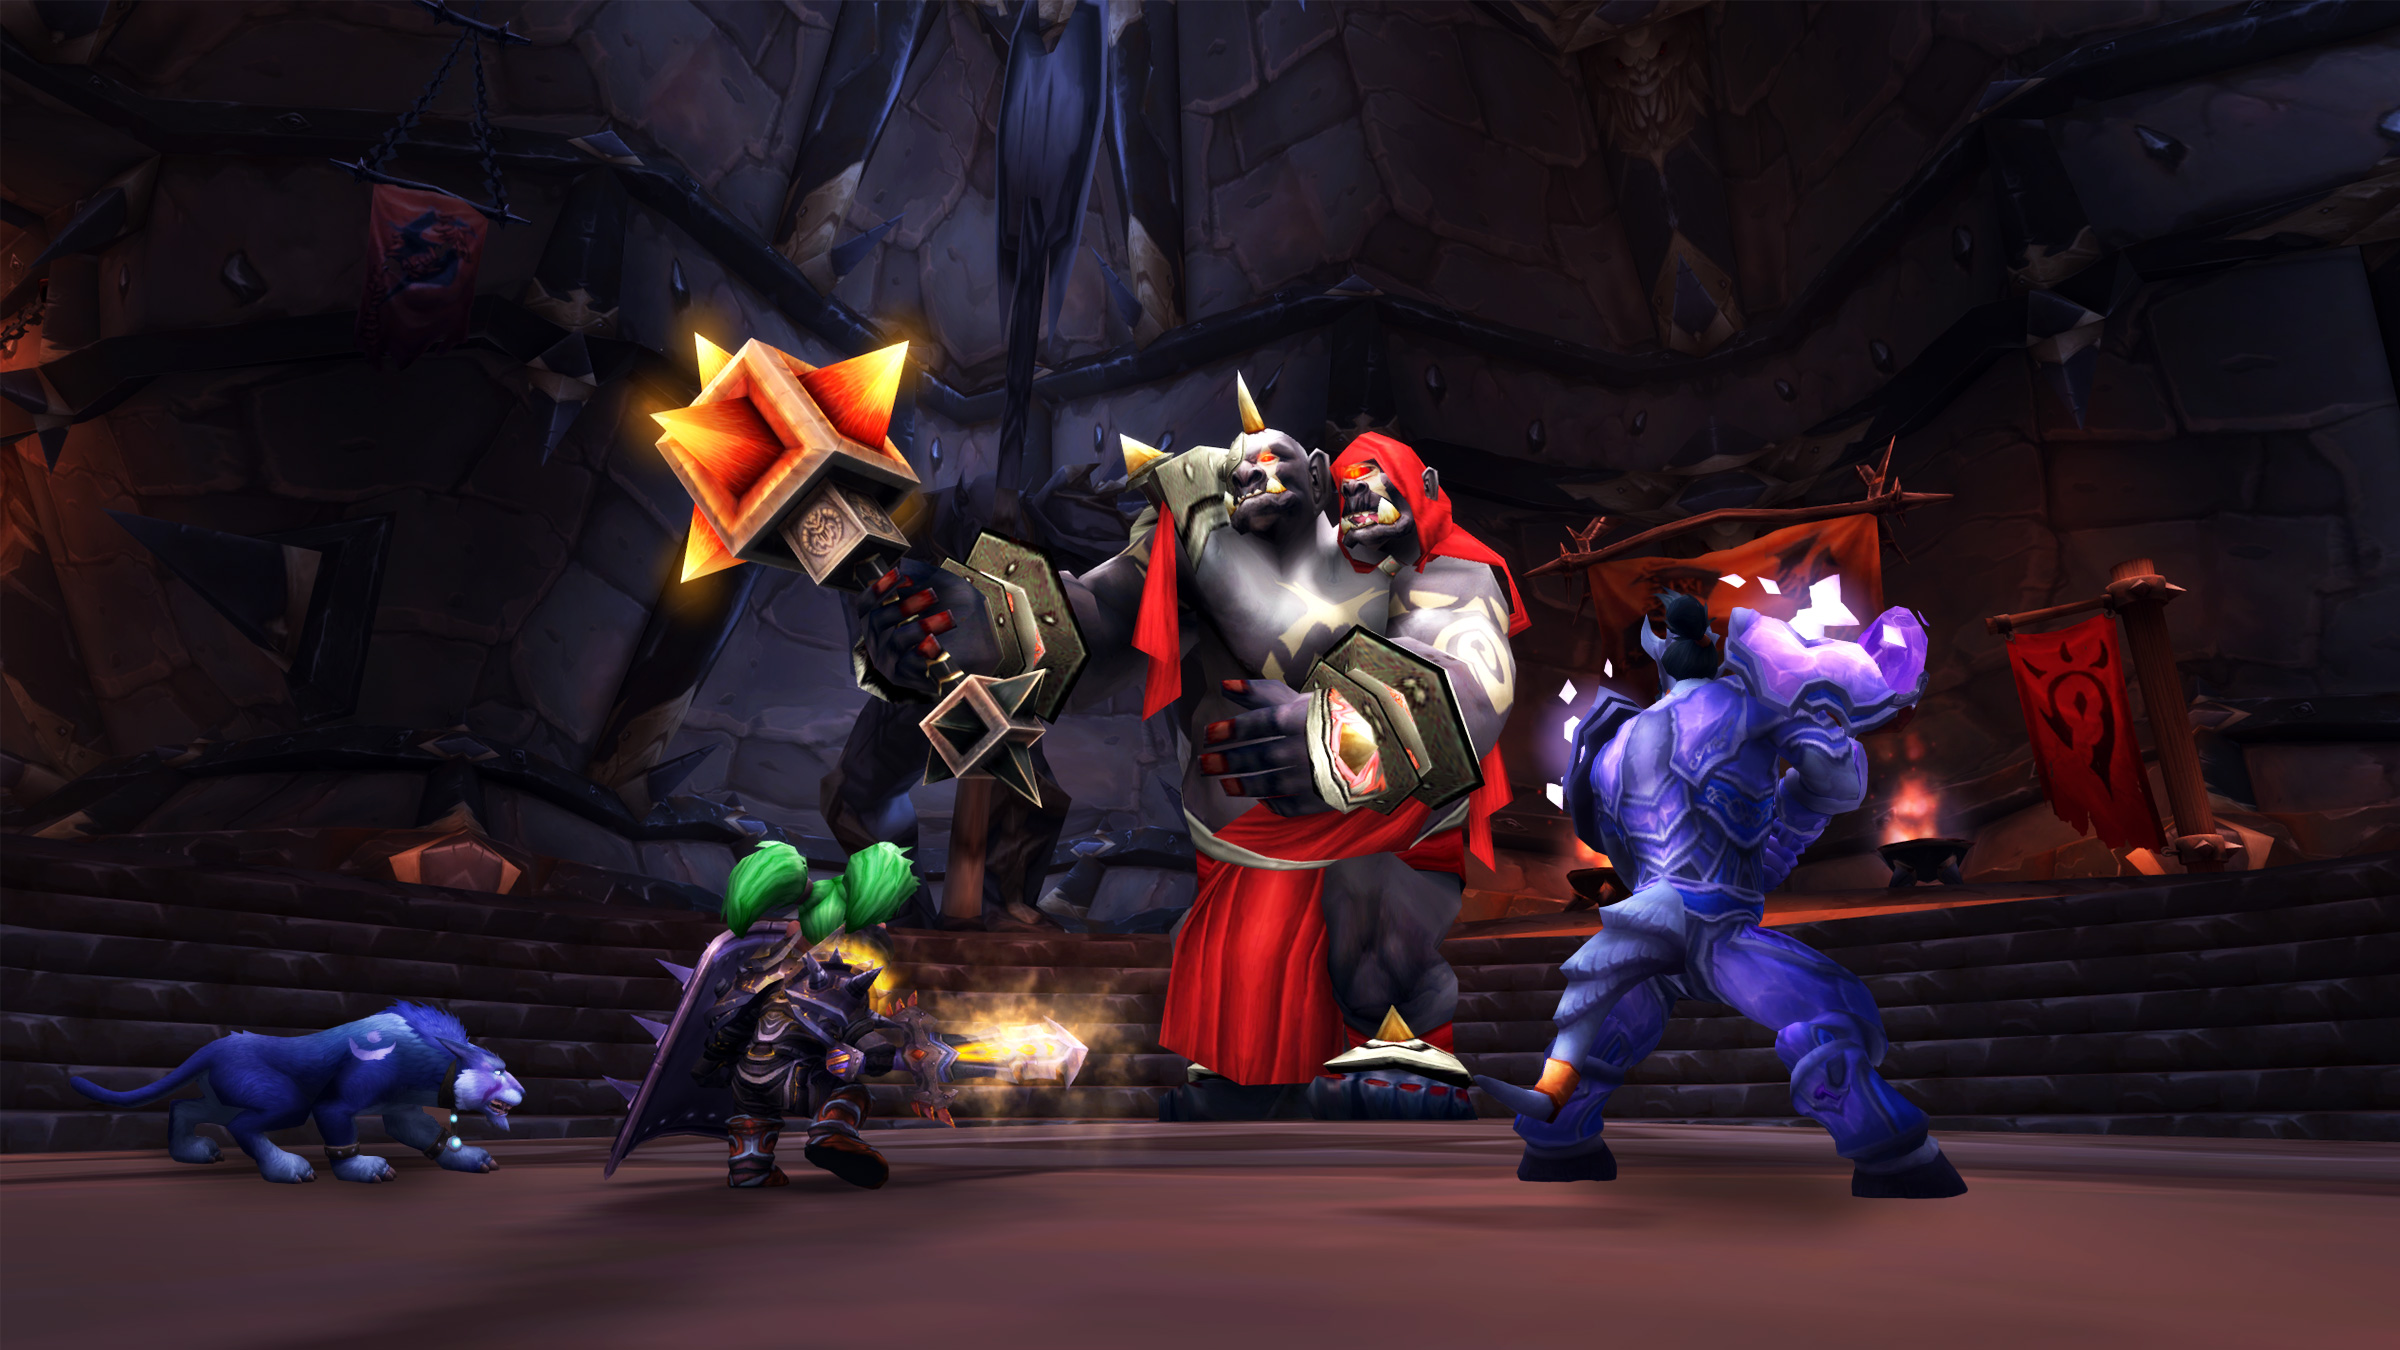 Evento Semanal de Bônus: Caminhada Temporal The Burning Crusade